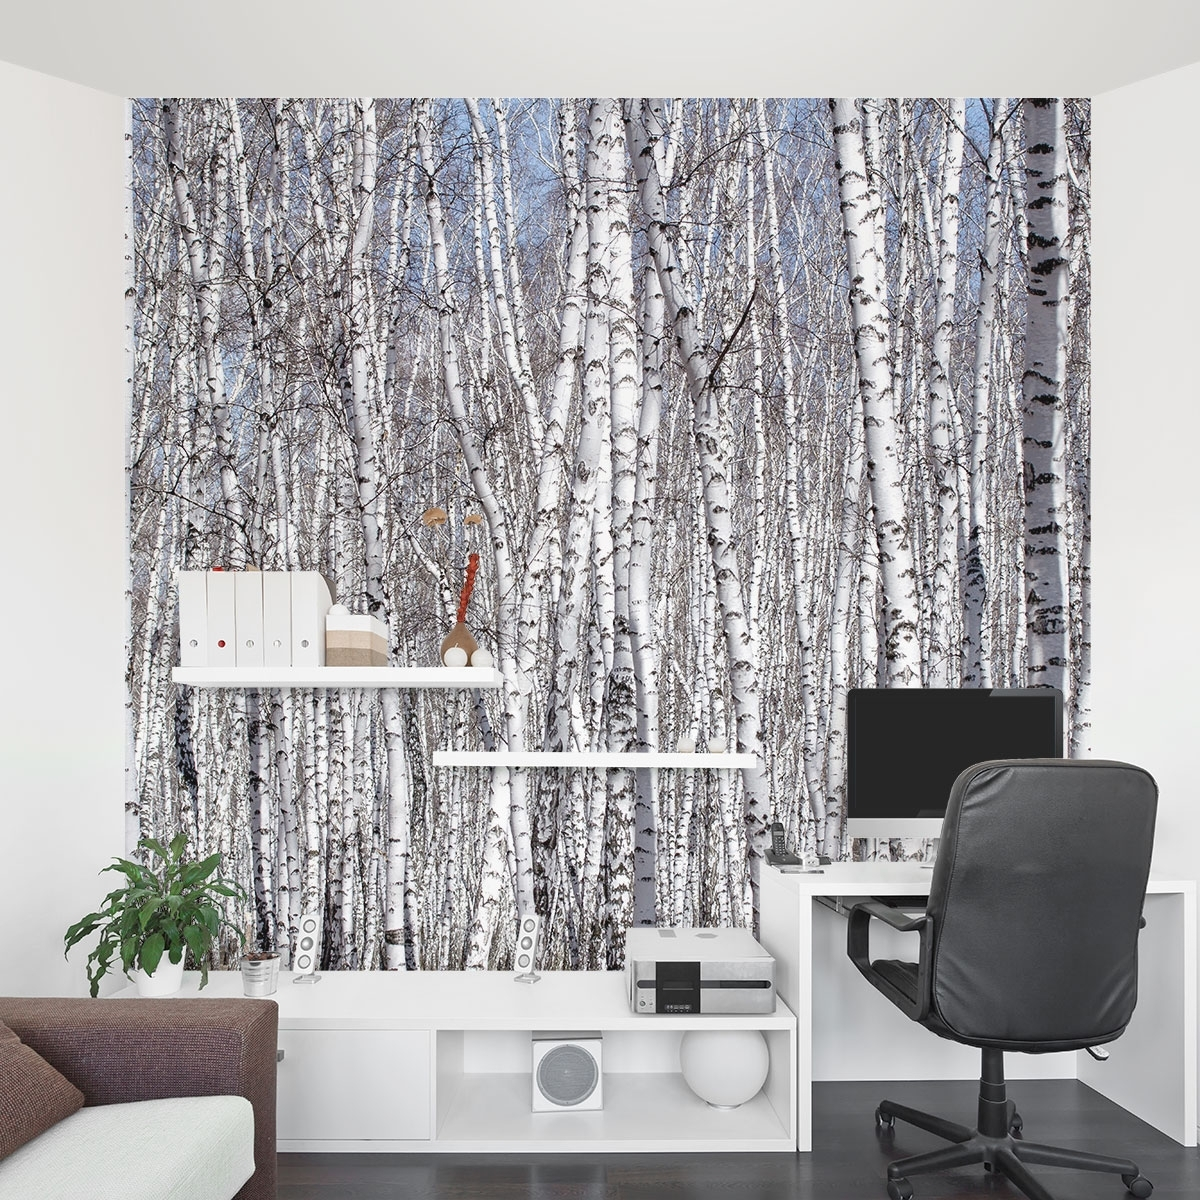 Birch Trees Wall Mural Pertaining To Most Current Wall Accent Decals (View 3 of 15)